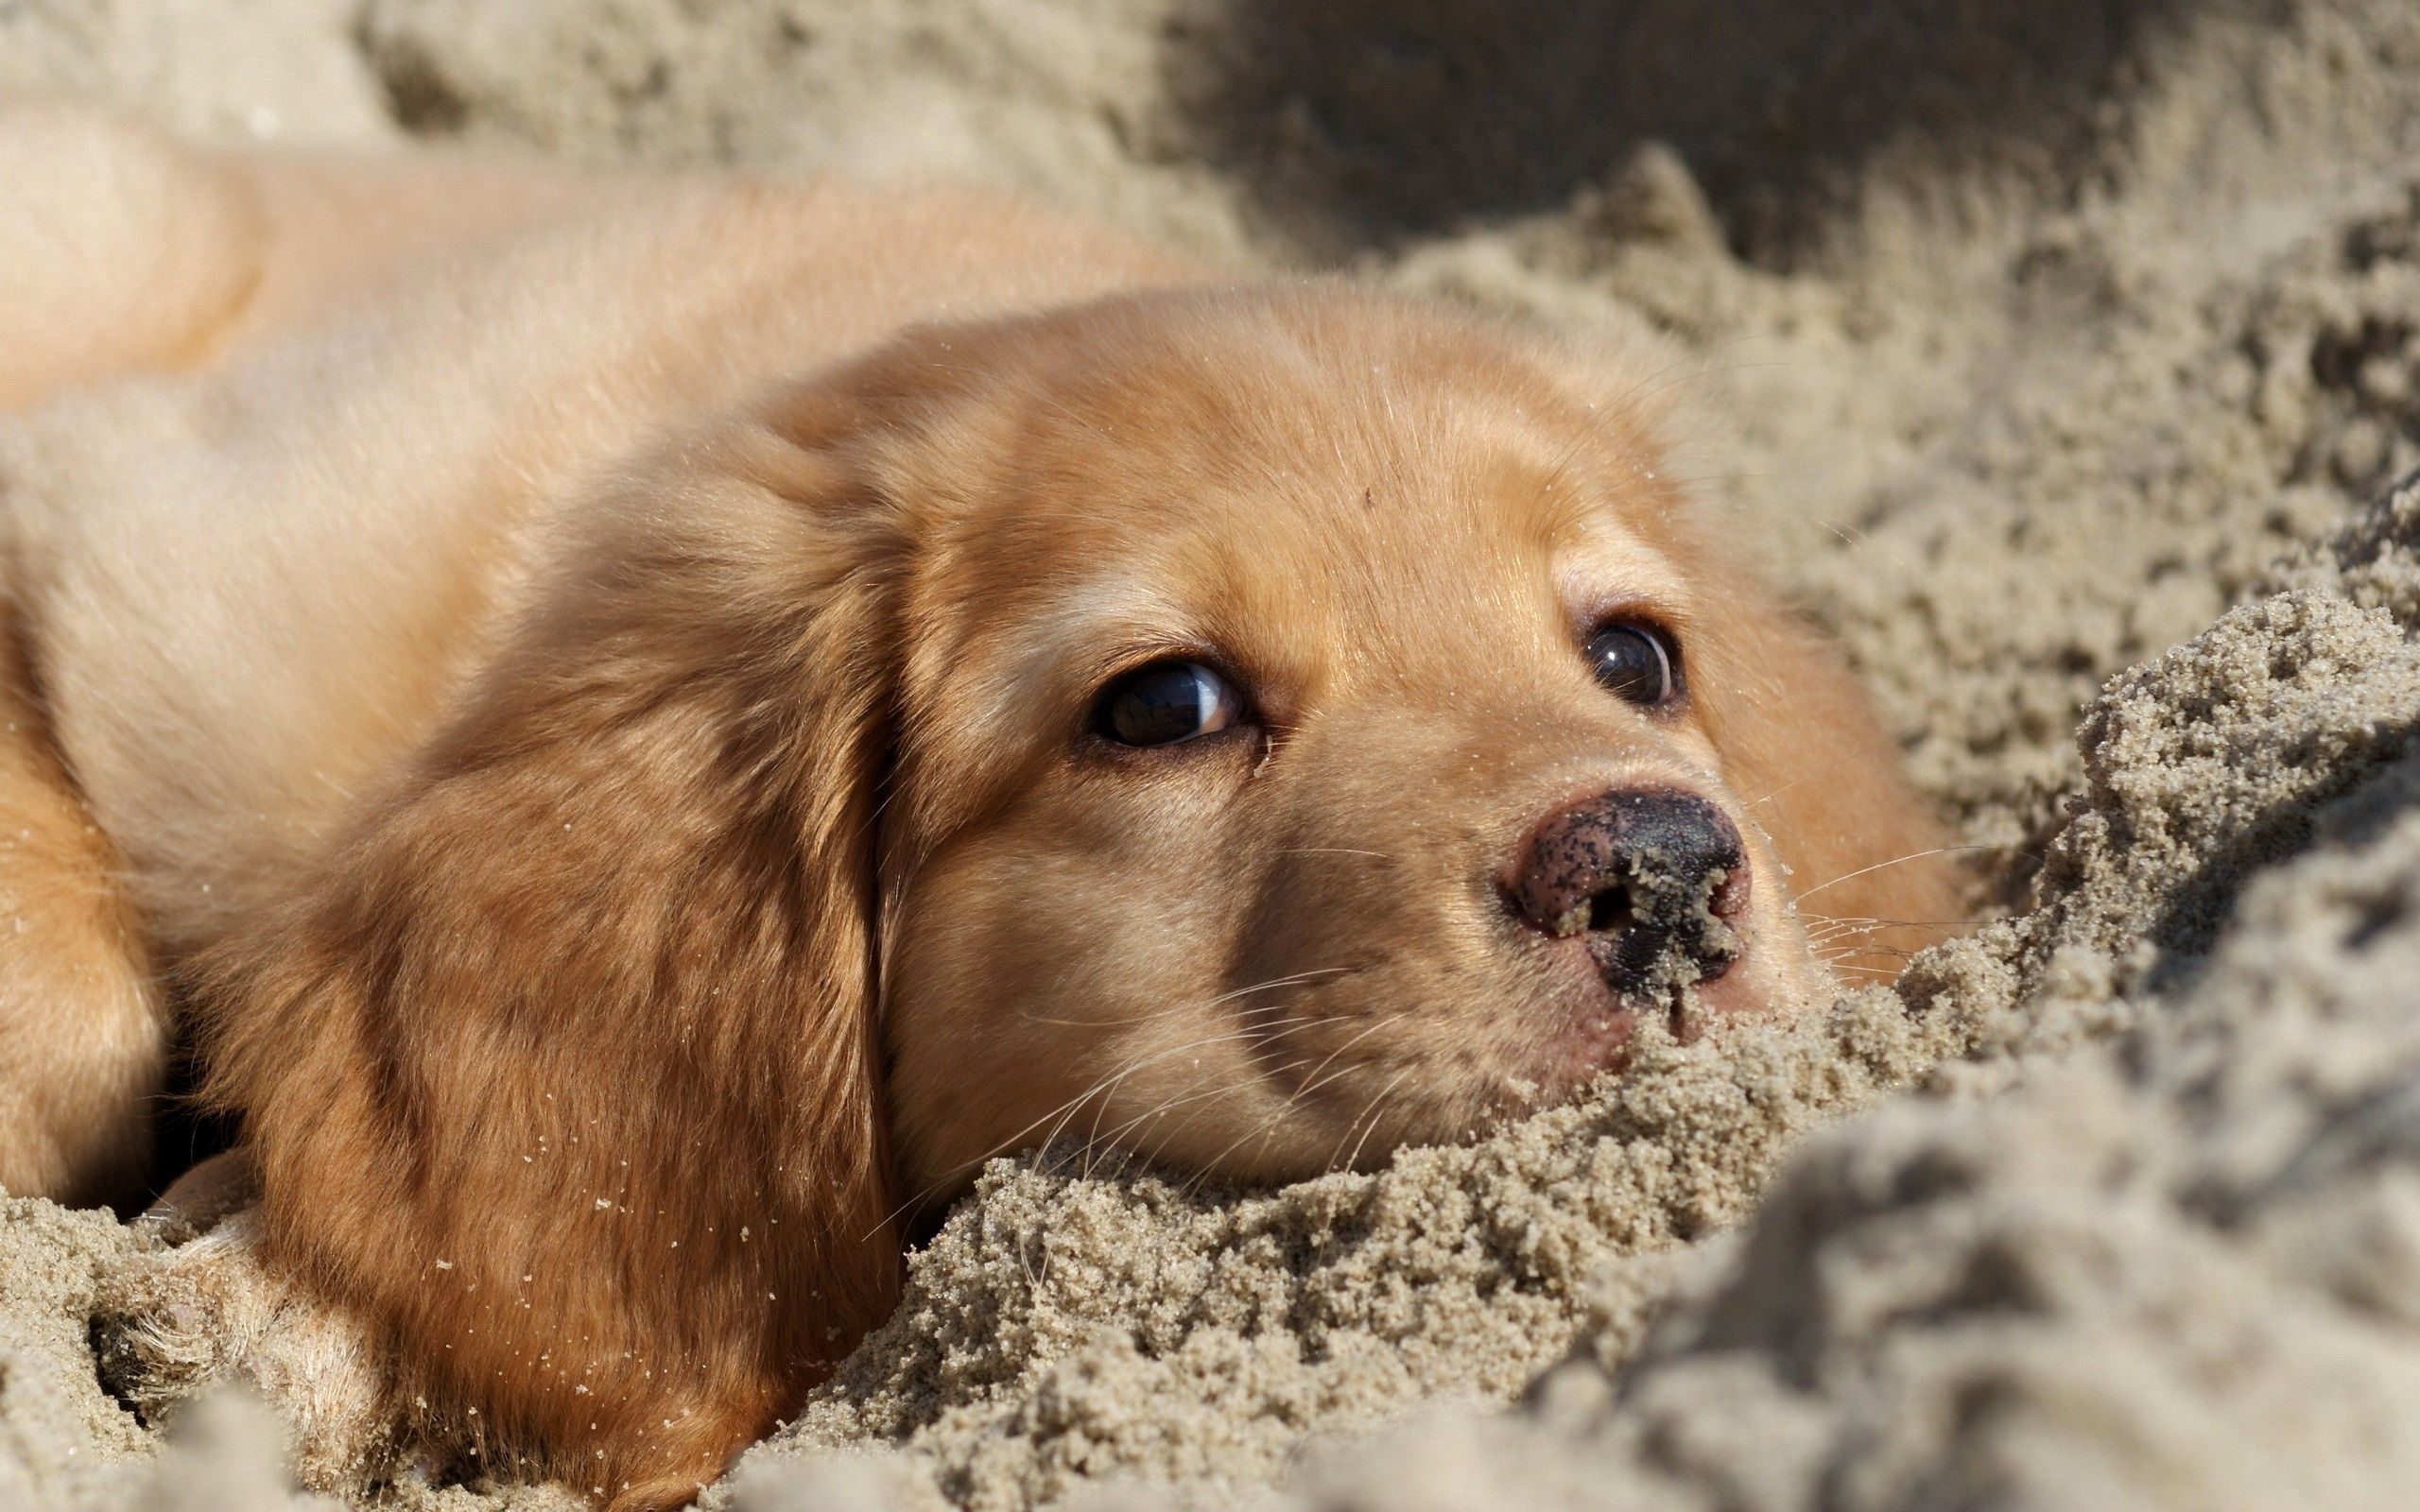 149167 download wallpaper Animals, Dog, Labrador, Puppy, Sand, Muzzle screensavers and pictures for free